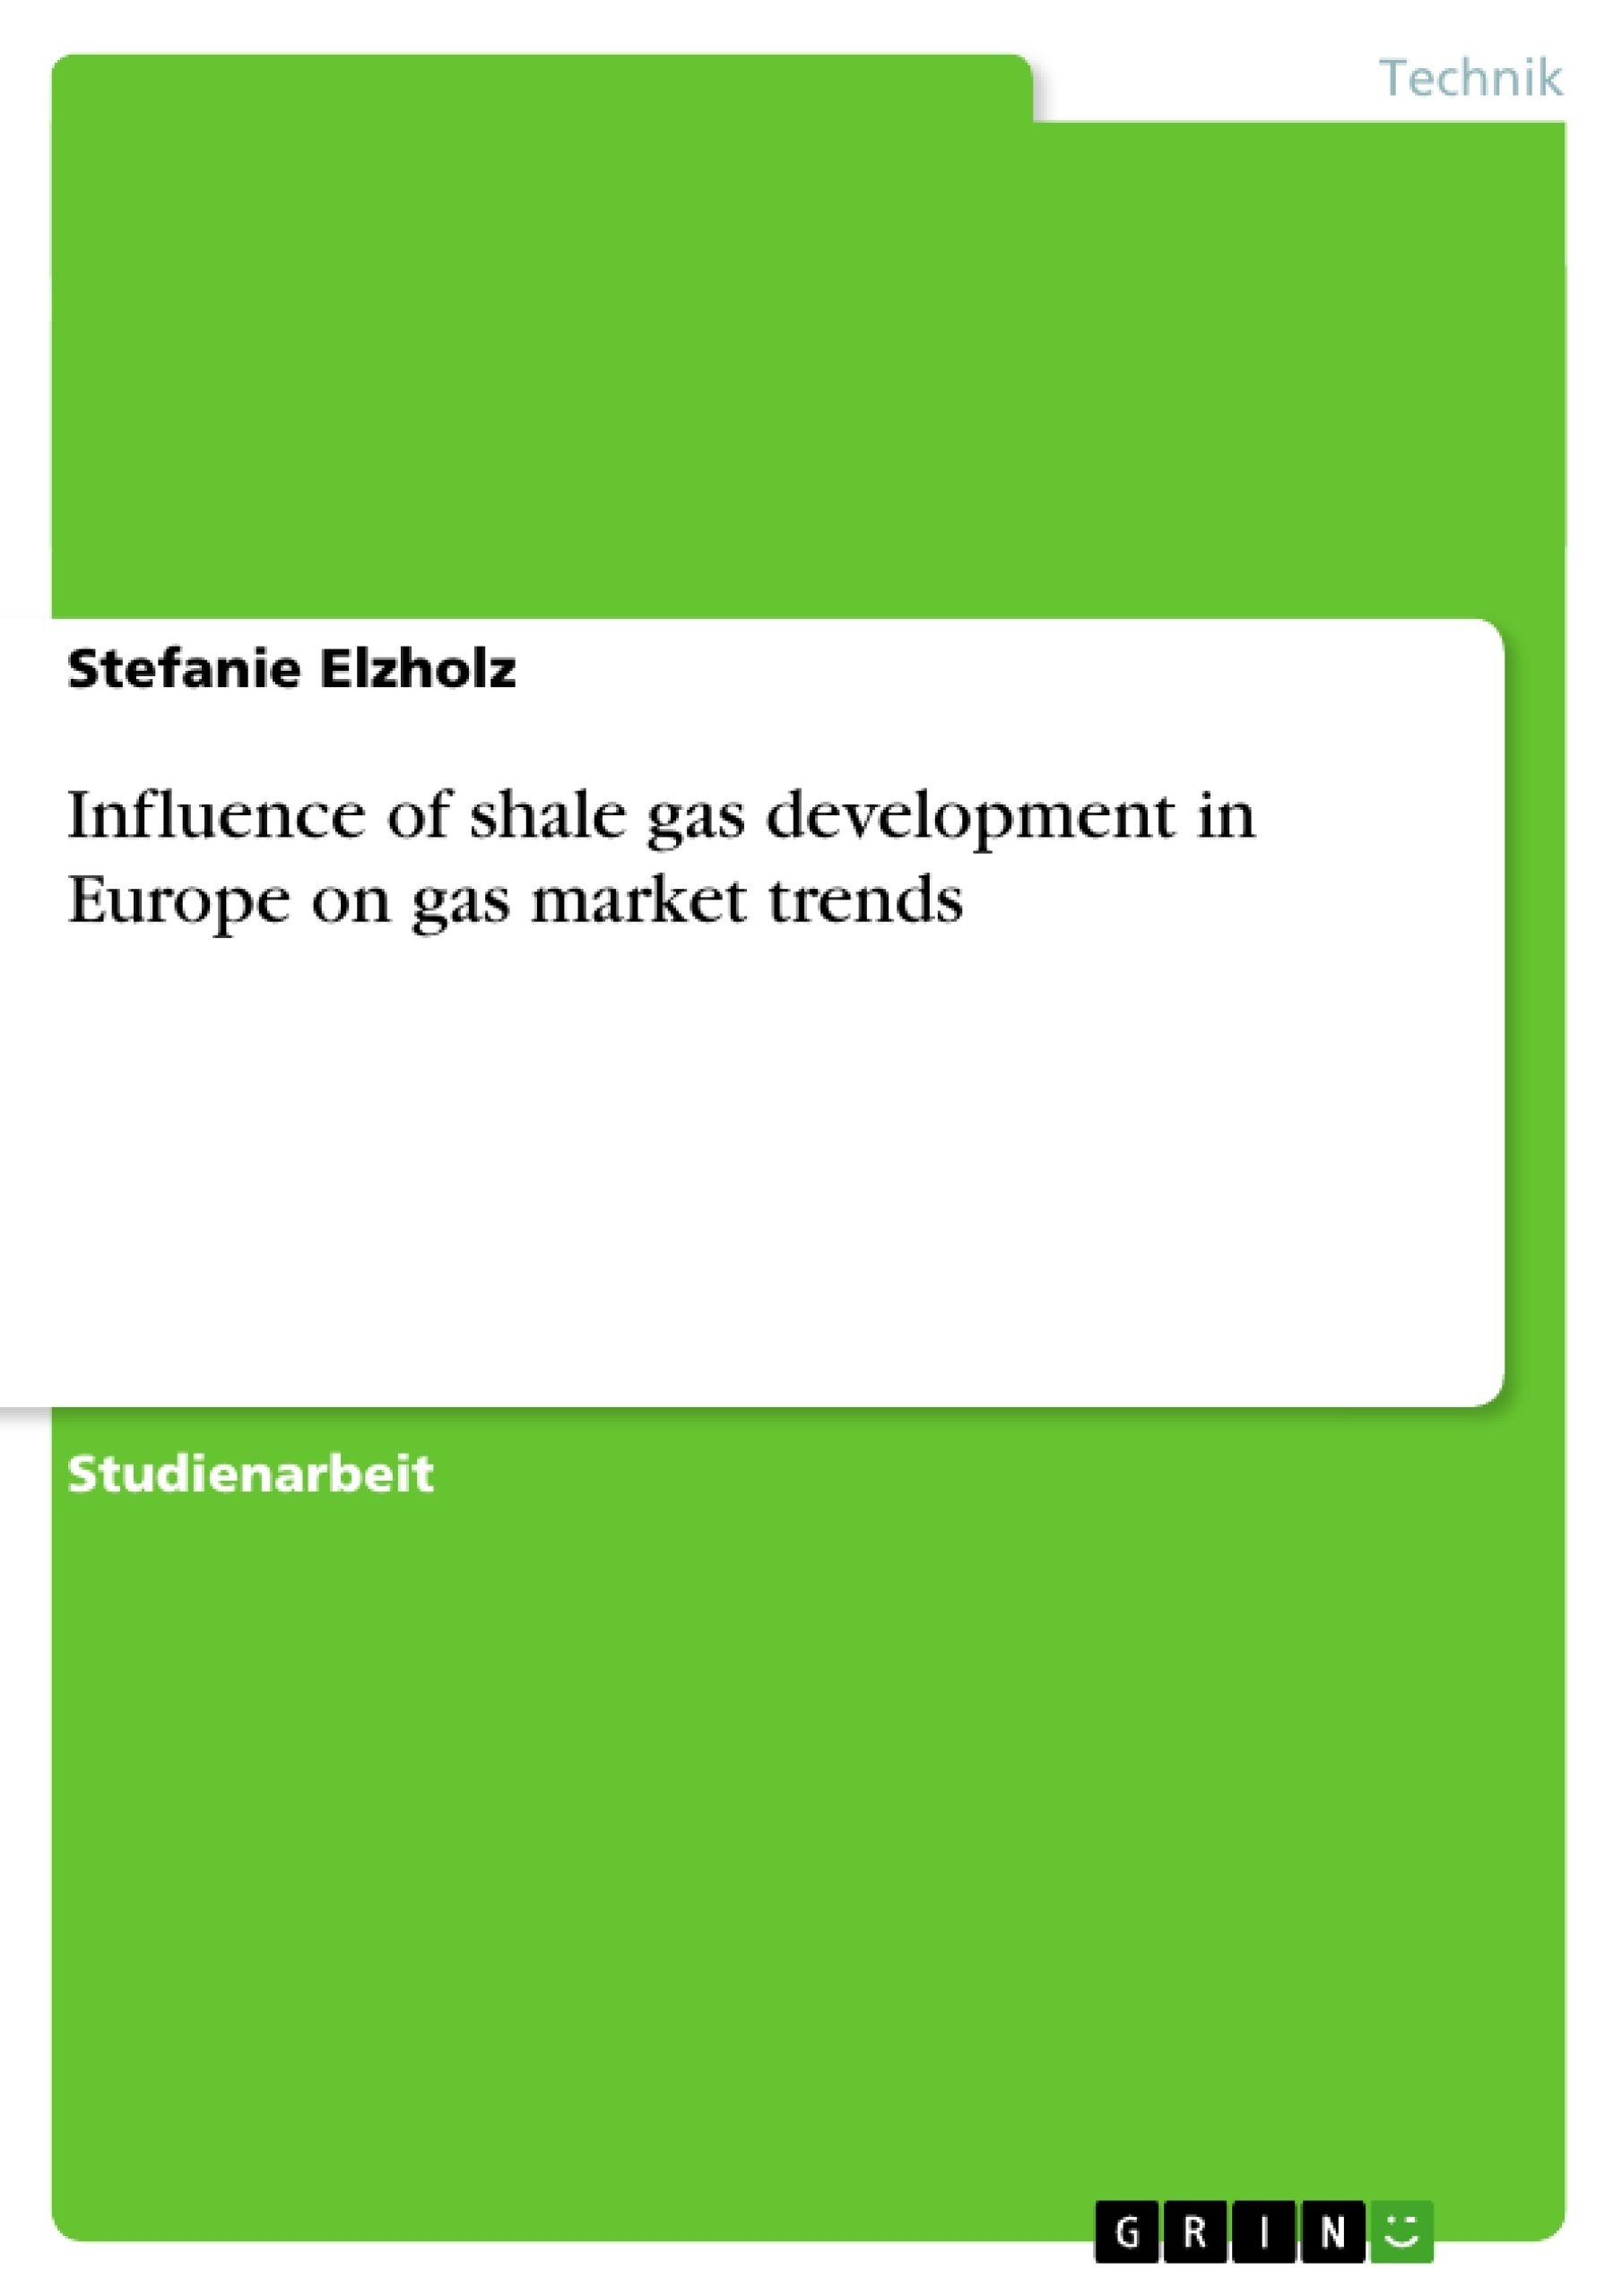 Titel: Influence of shale gas development in Europe on gas market trends